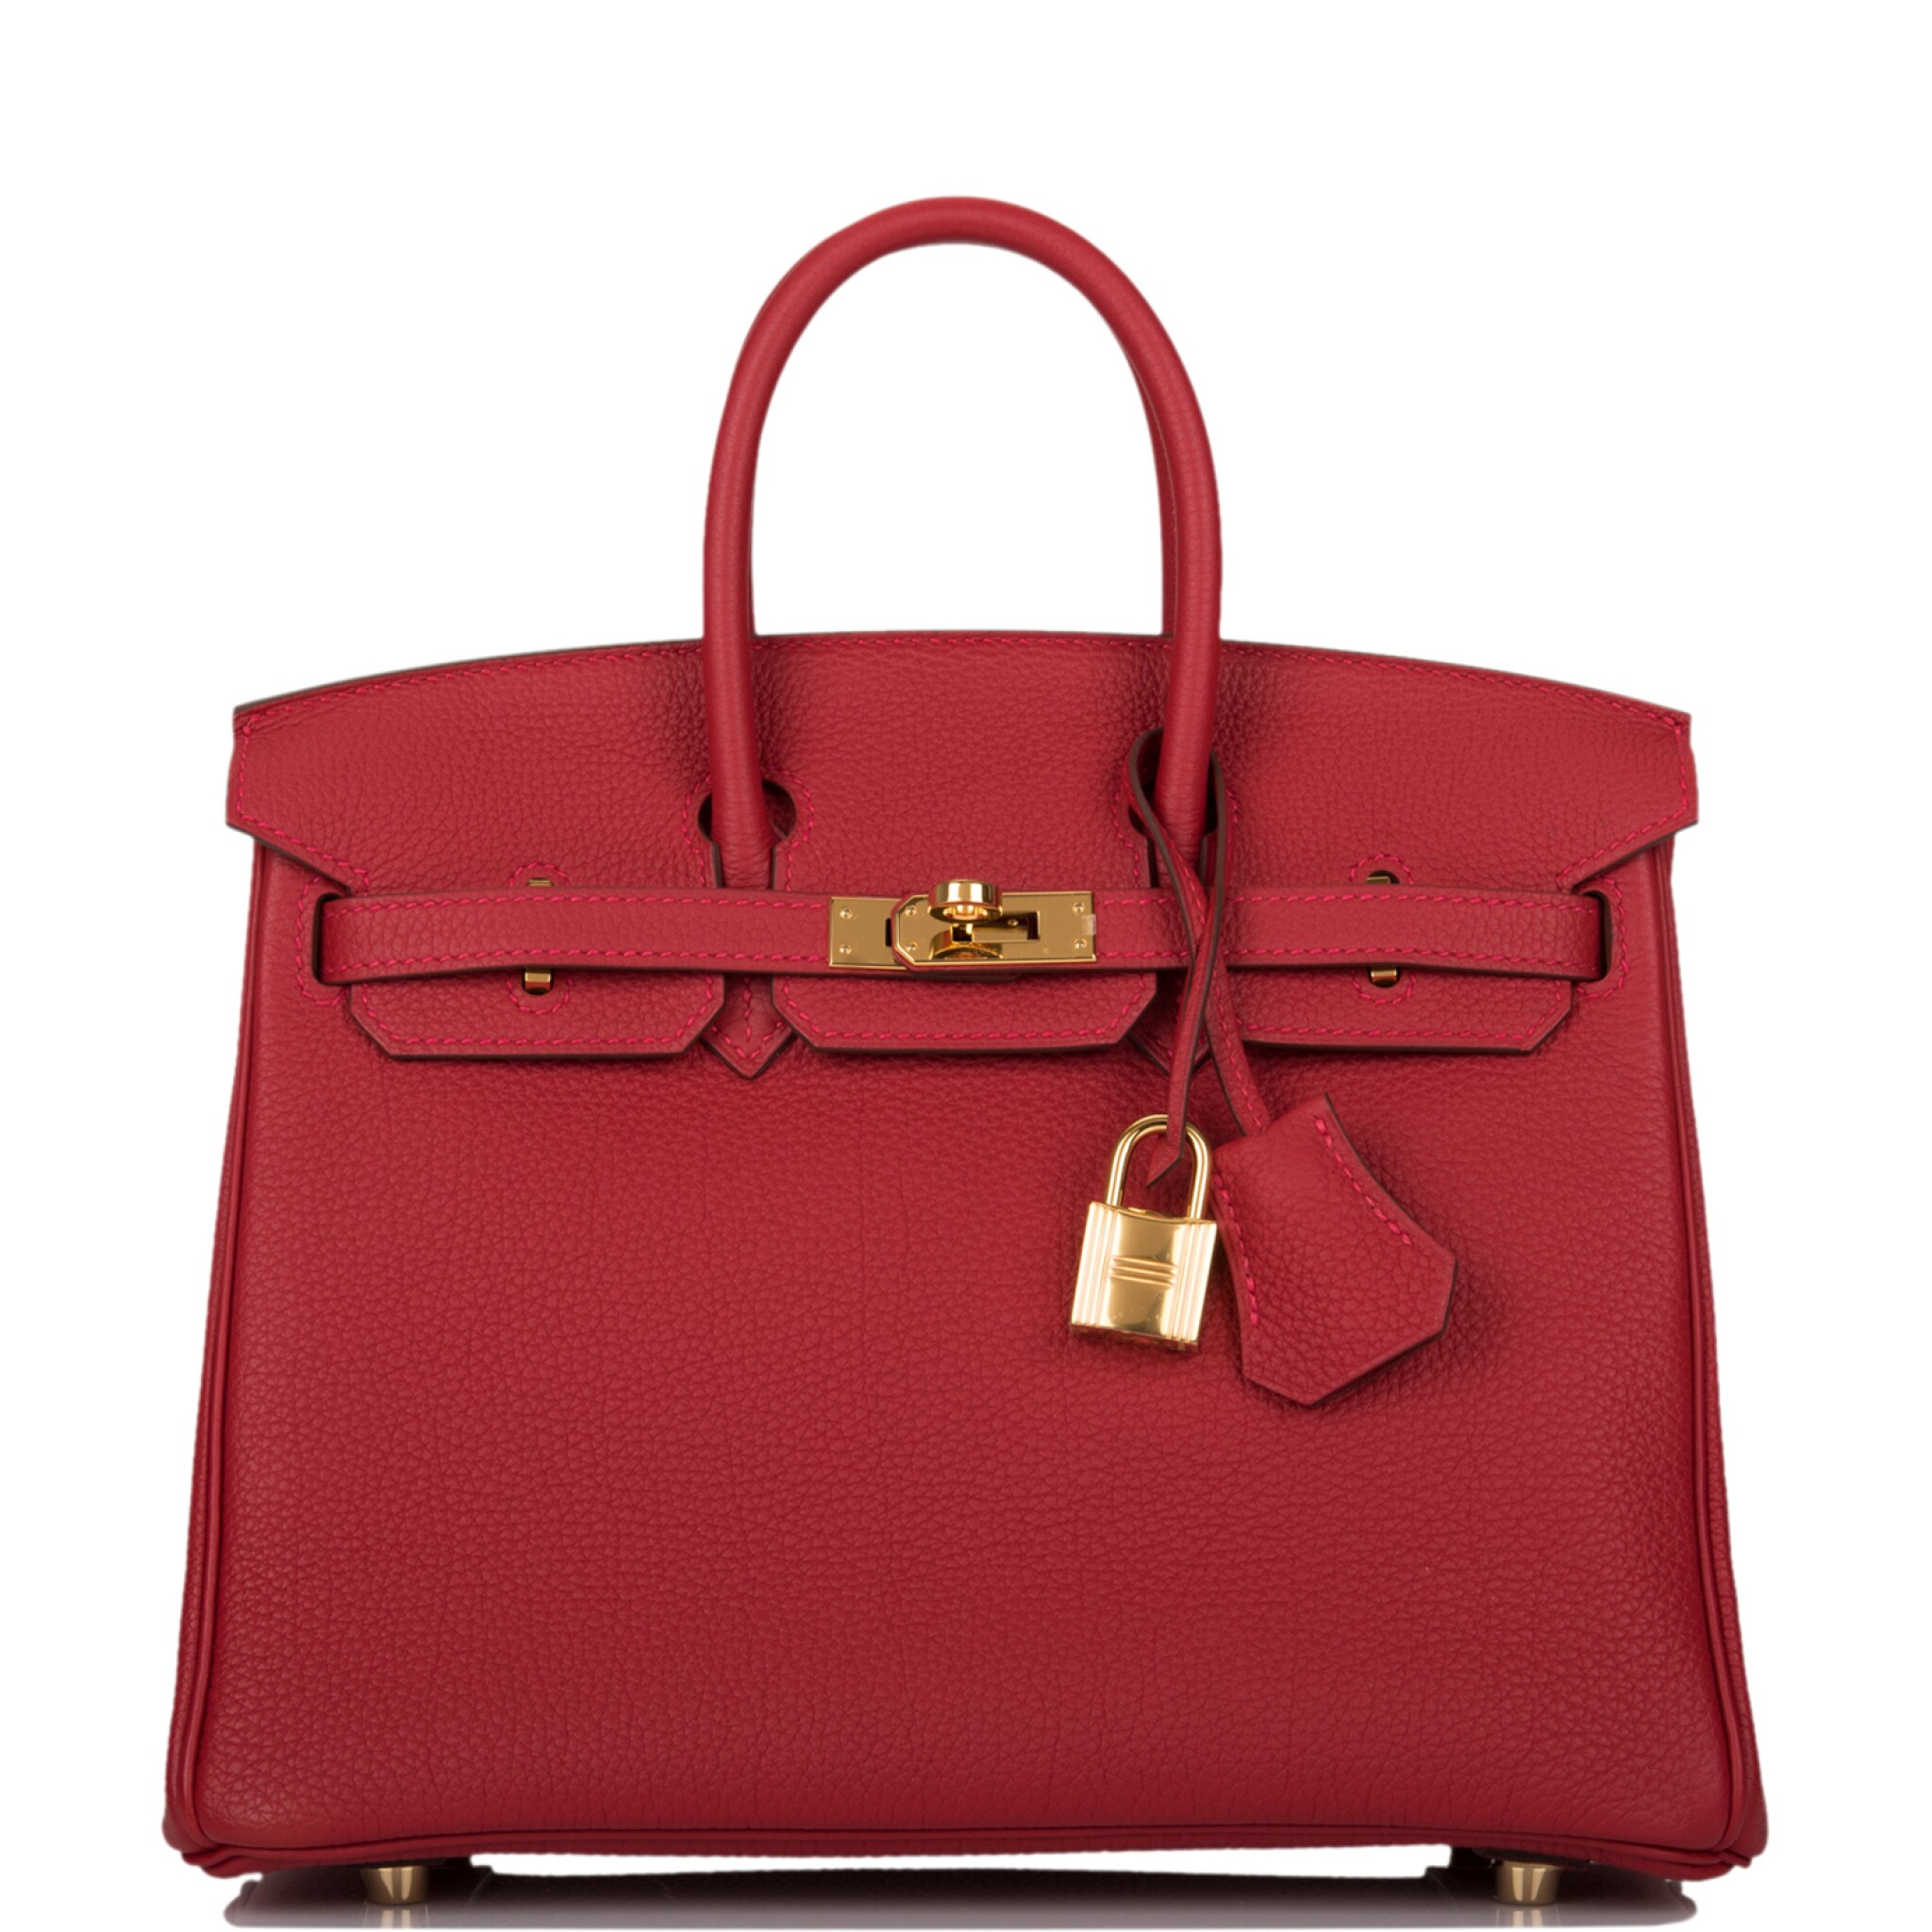 View full screen - View 1 of Lot 21. HERMÈS   ROUGE VIF BIRKIN 25CM OF TOGO LEATHER WITH GOLD HARDWARE.